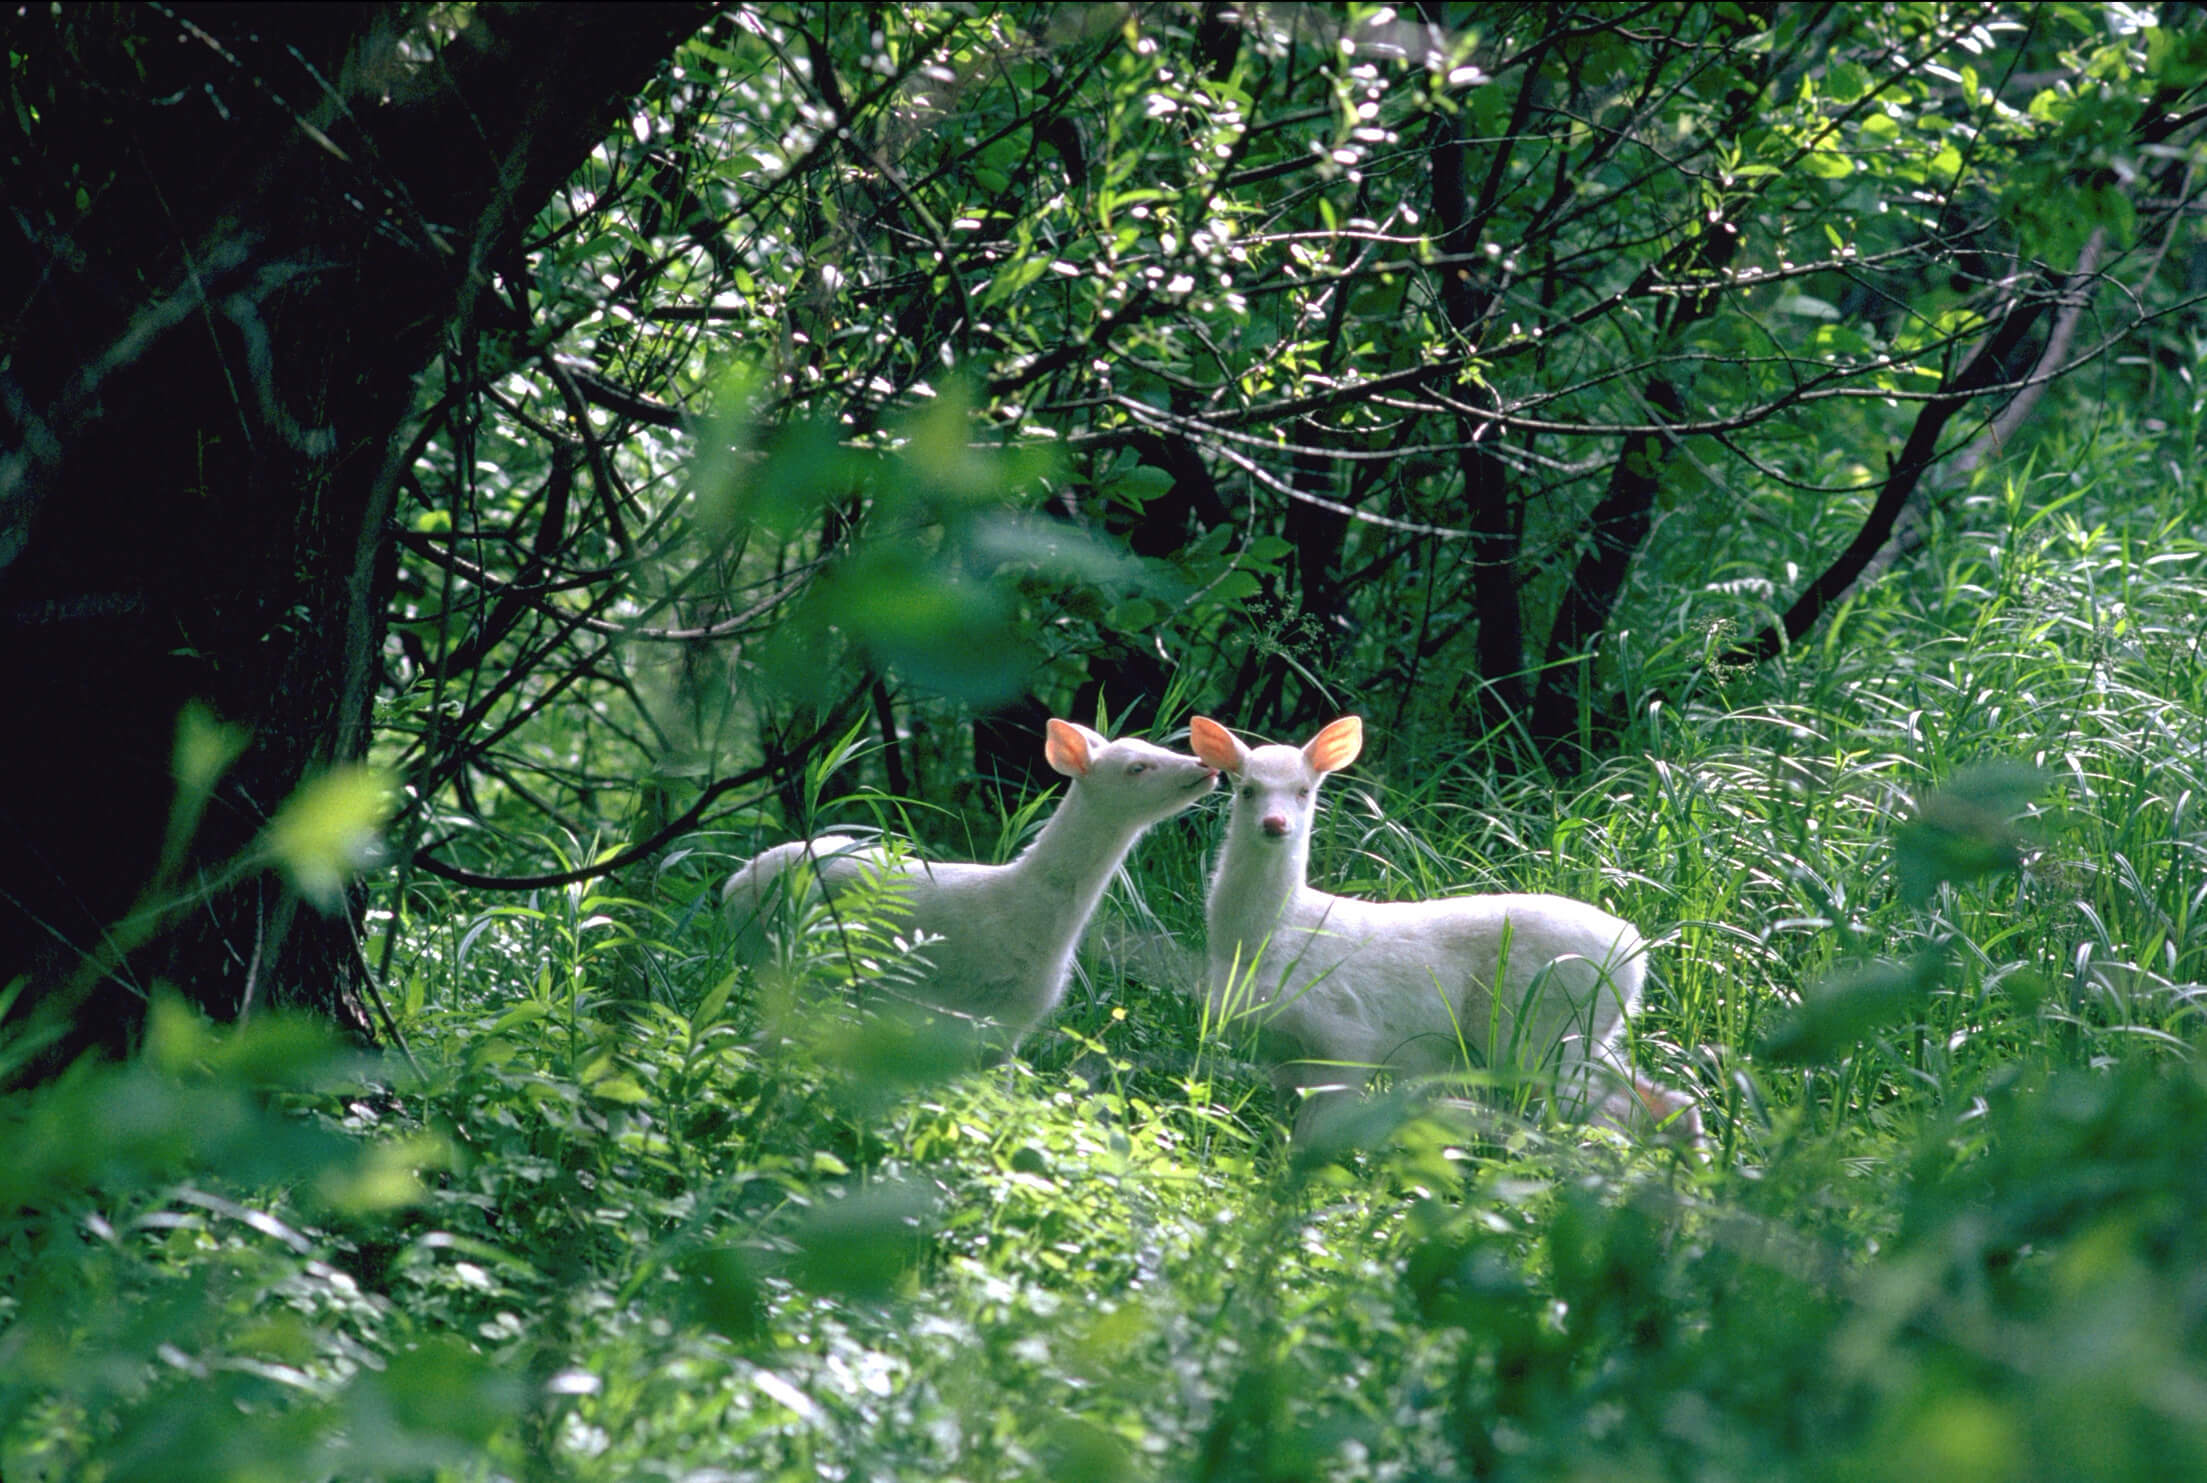 Twin Albino Whitetail Fawns